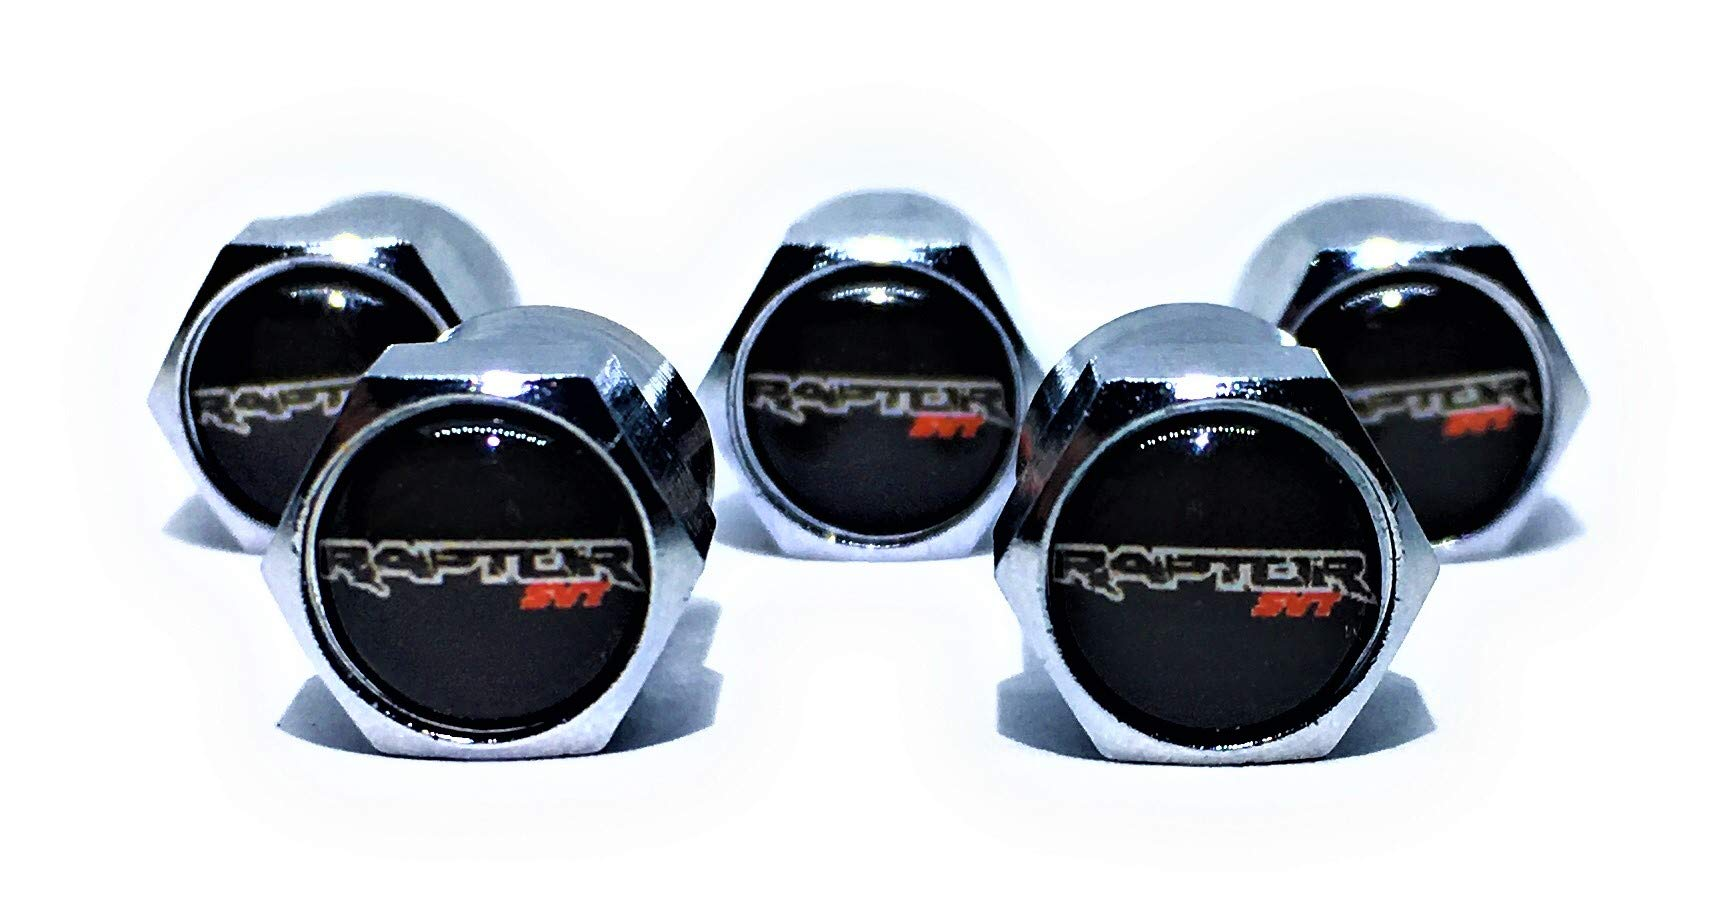 Buycleverly Ford Raptor SVT Metal Tire Valve Stem Caps Set Pack / 5 Pcs for Ford Raptor XL XLT Lariat Raptor King Ranch Platinum Limited by Buycleverly